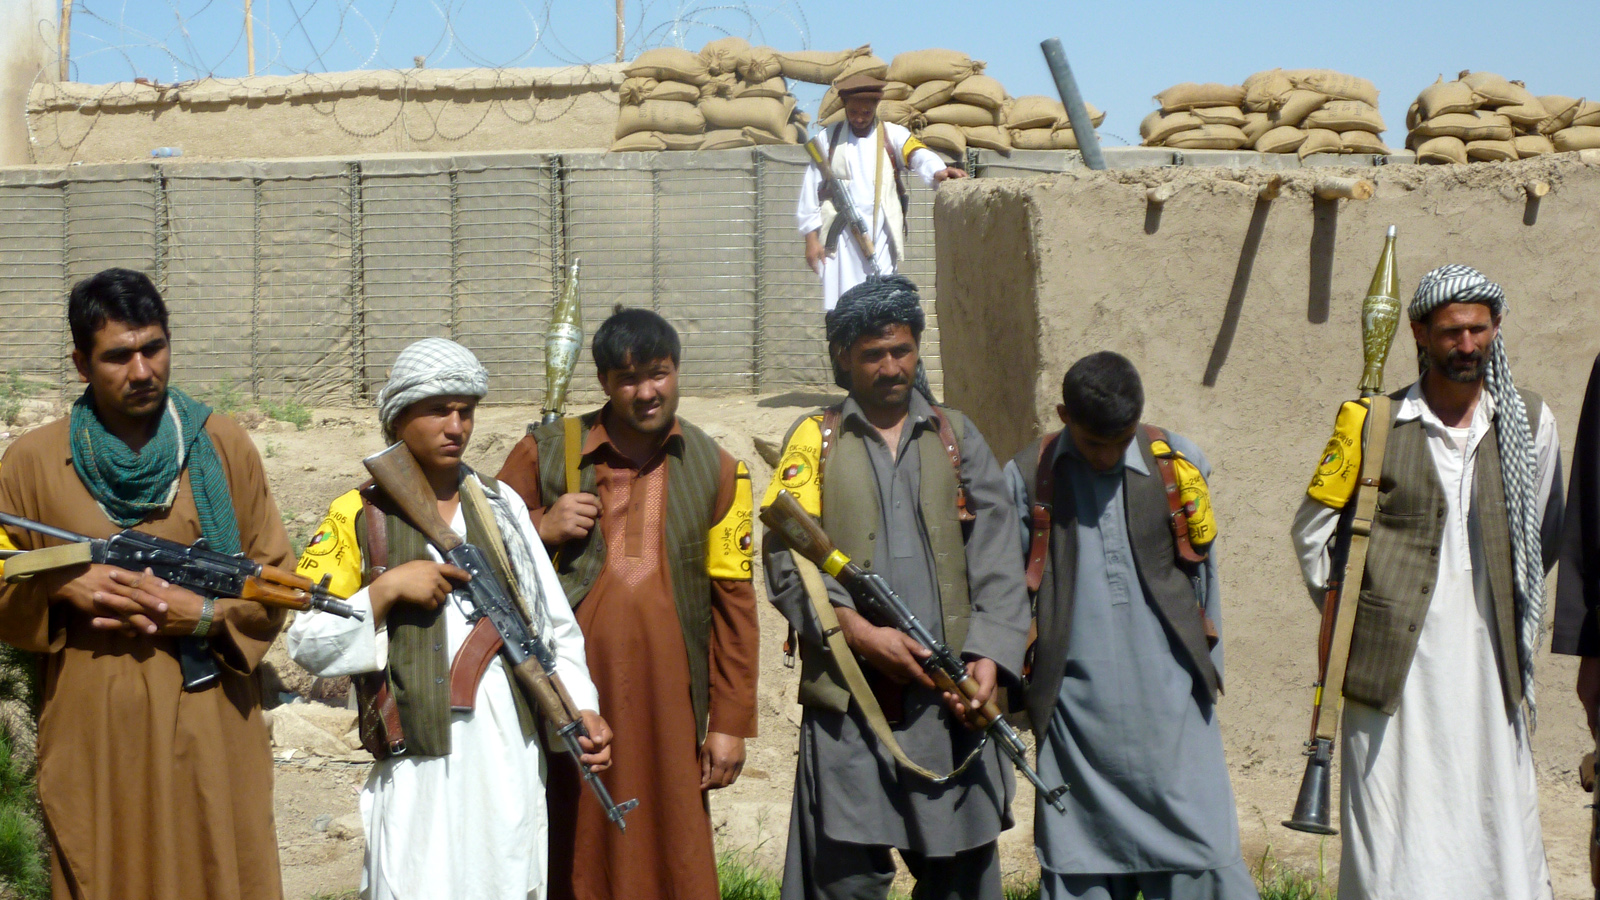 CIP militia in Afghanistan, one of a large number of unofficial armed groups